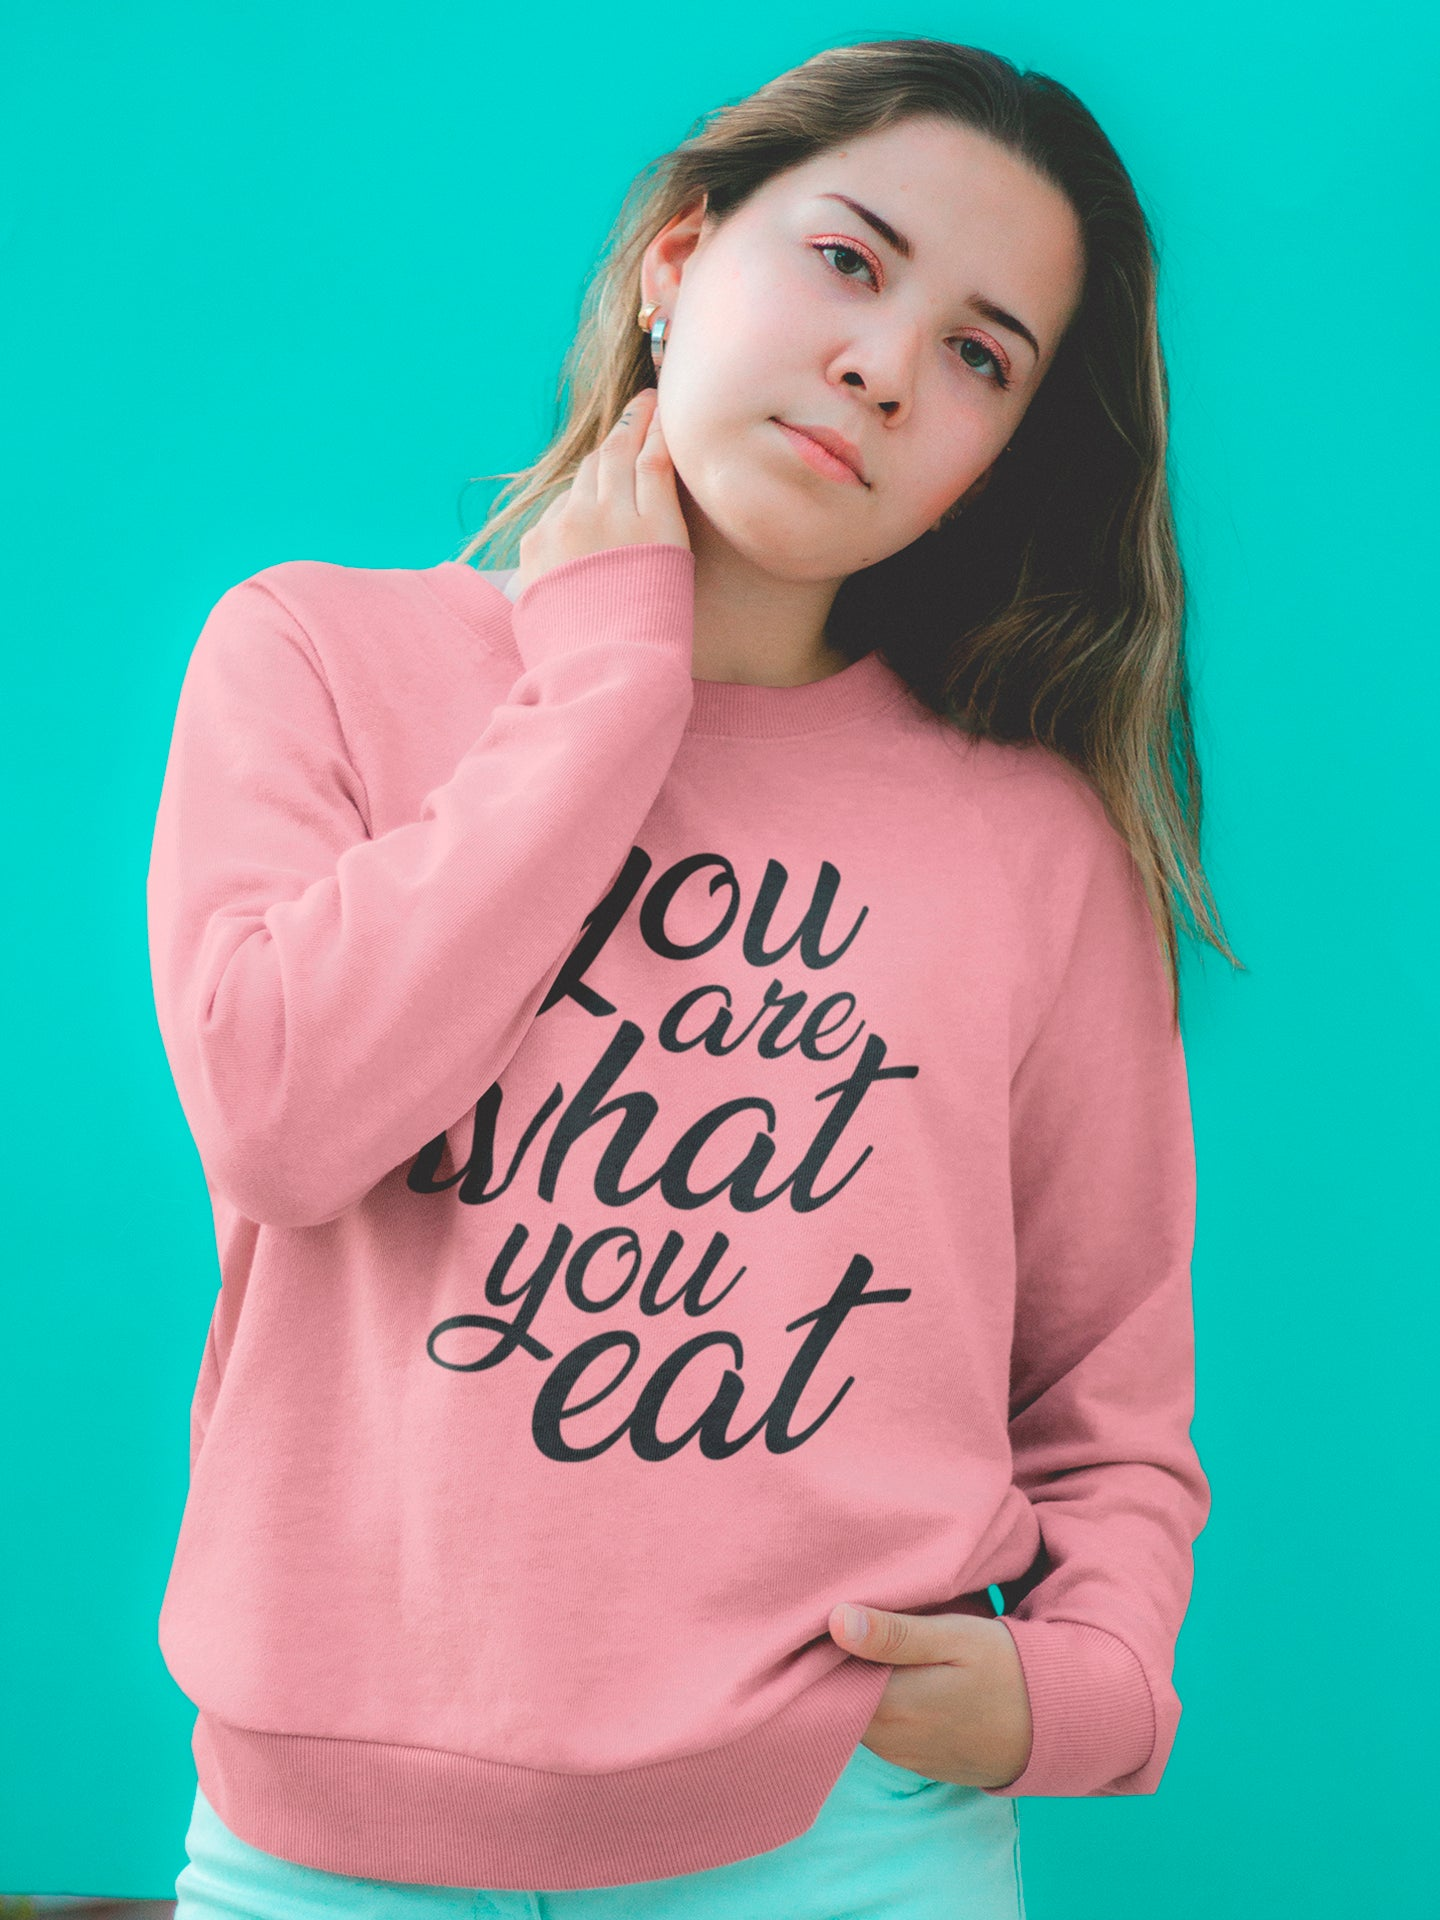 You are what you eat - Woman's vegan sweatshirt